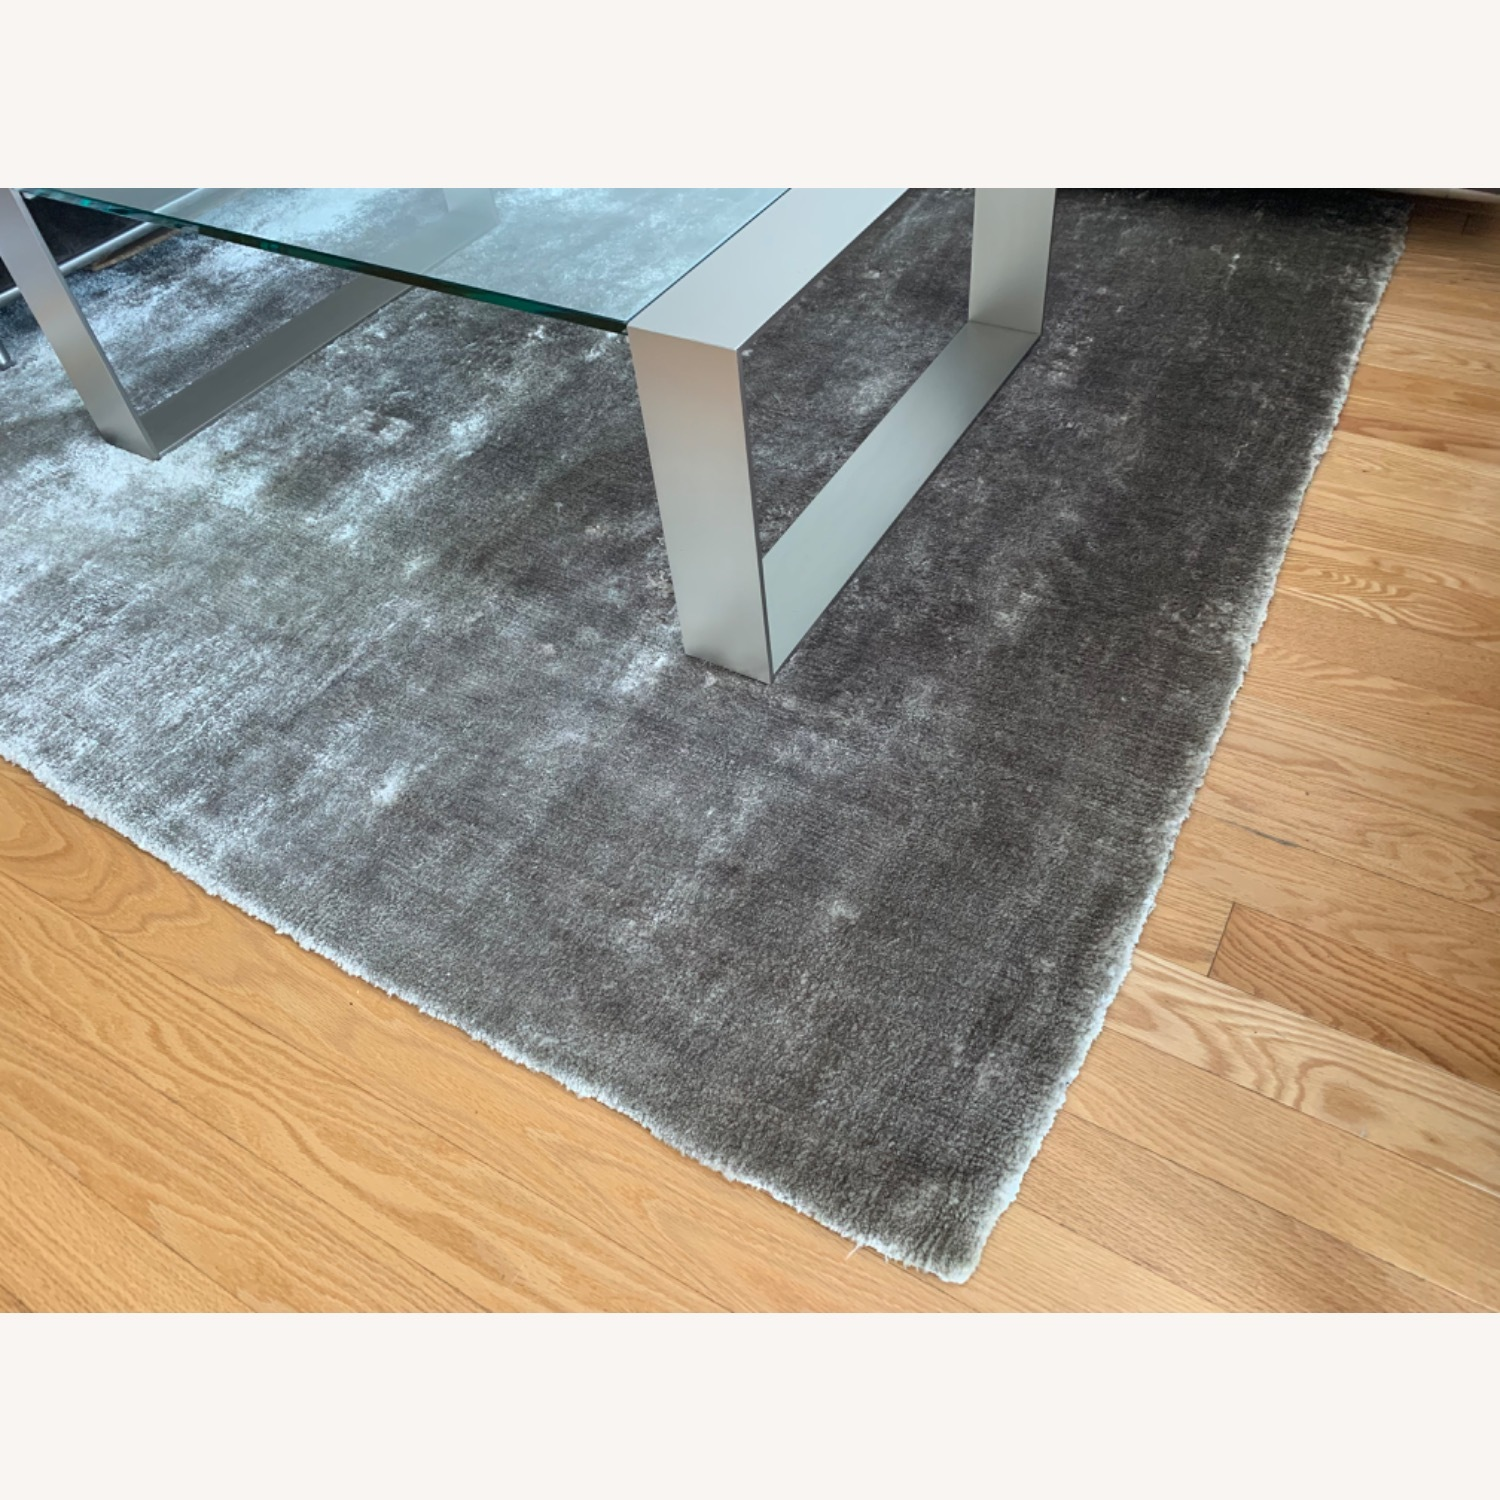 Lucens Rug by Linie Design - image-4